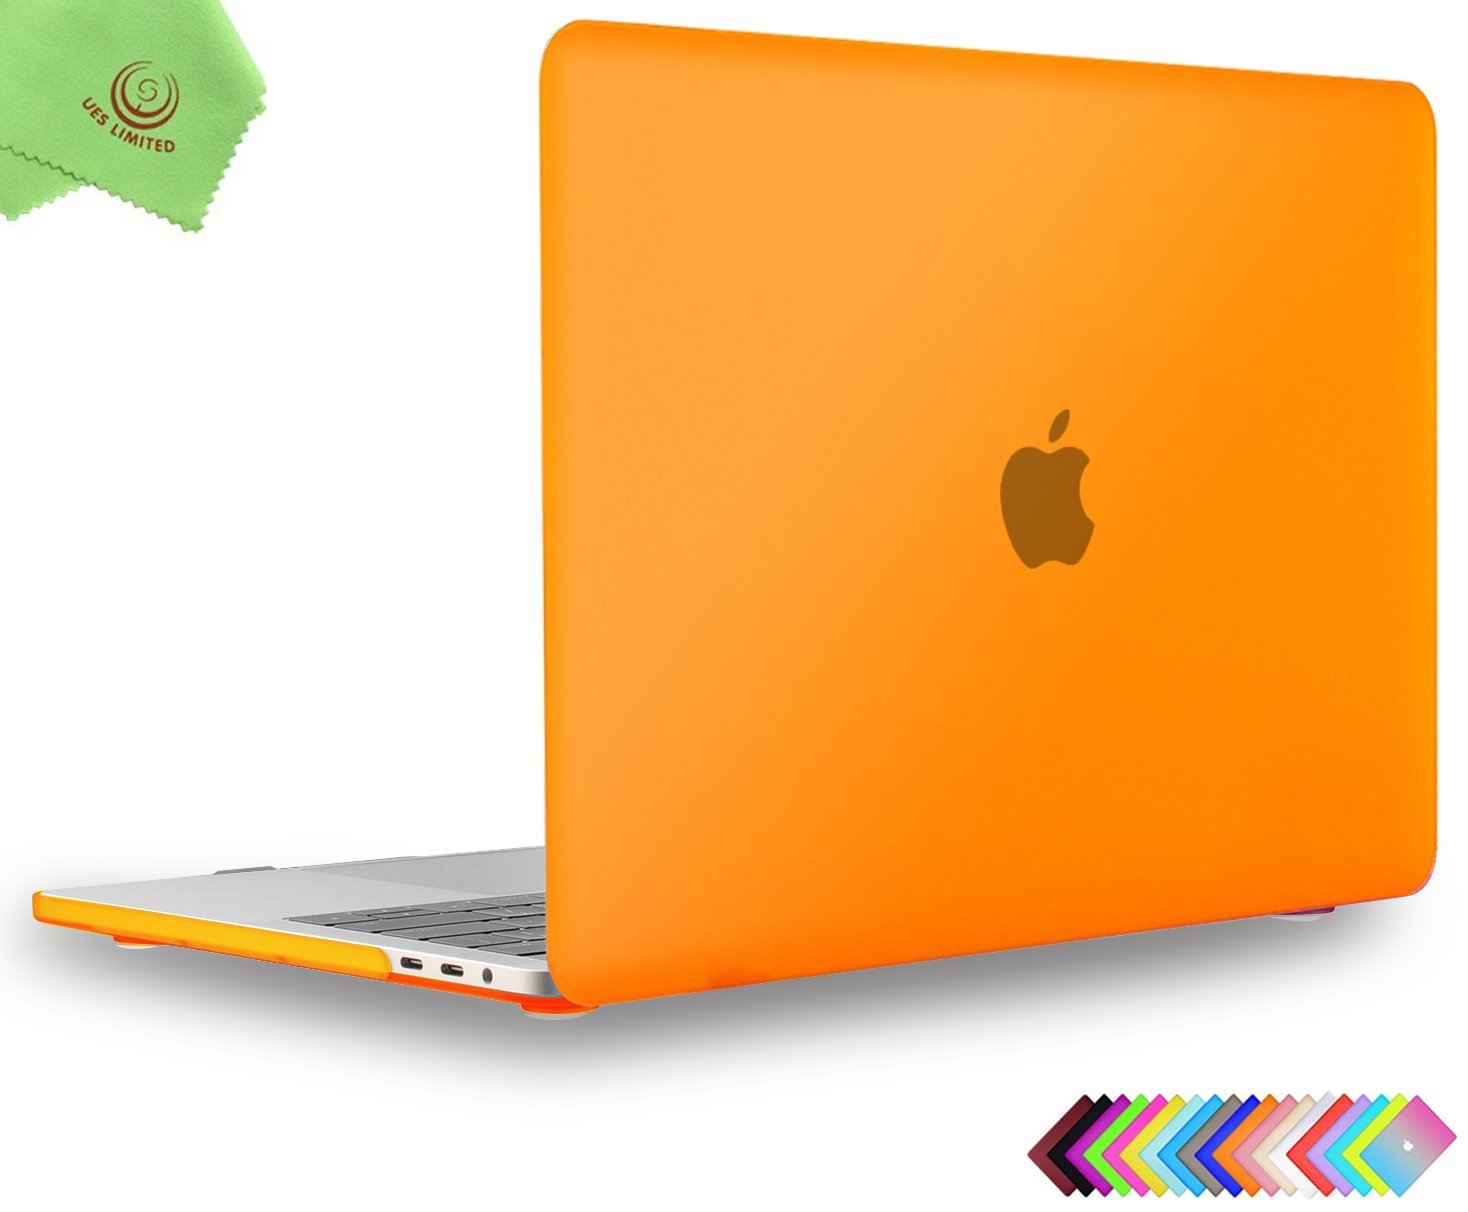 UESWILL MacBook Pro 13 inch Case 2018 & 2017 & 2016 Release, A1989/A1706/A1708, Matte Hard Case Cover for Newest MacBook Pro 13 inch with/Without Touch Bar Touch ID, Orange